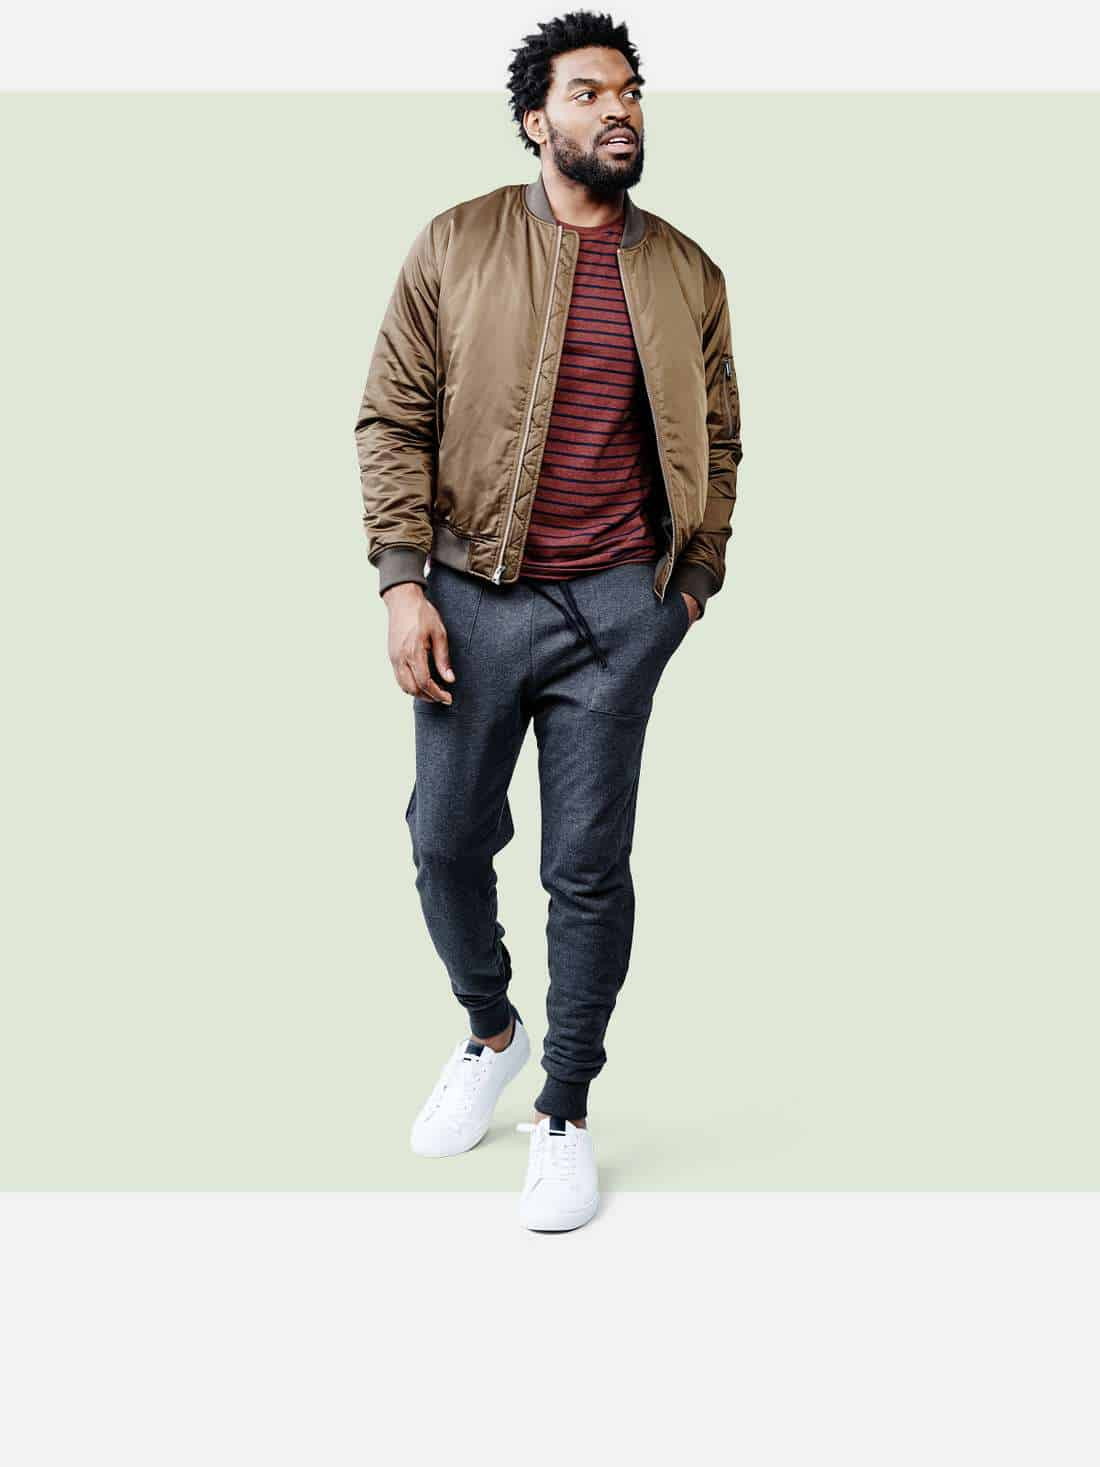 A man modeling Target clothing